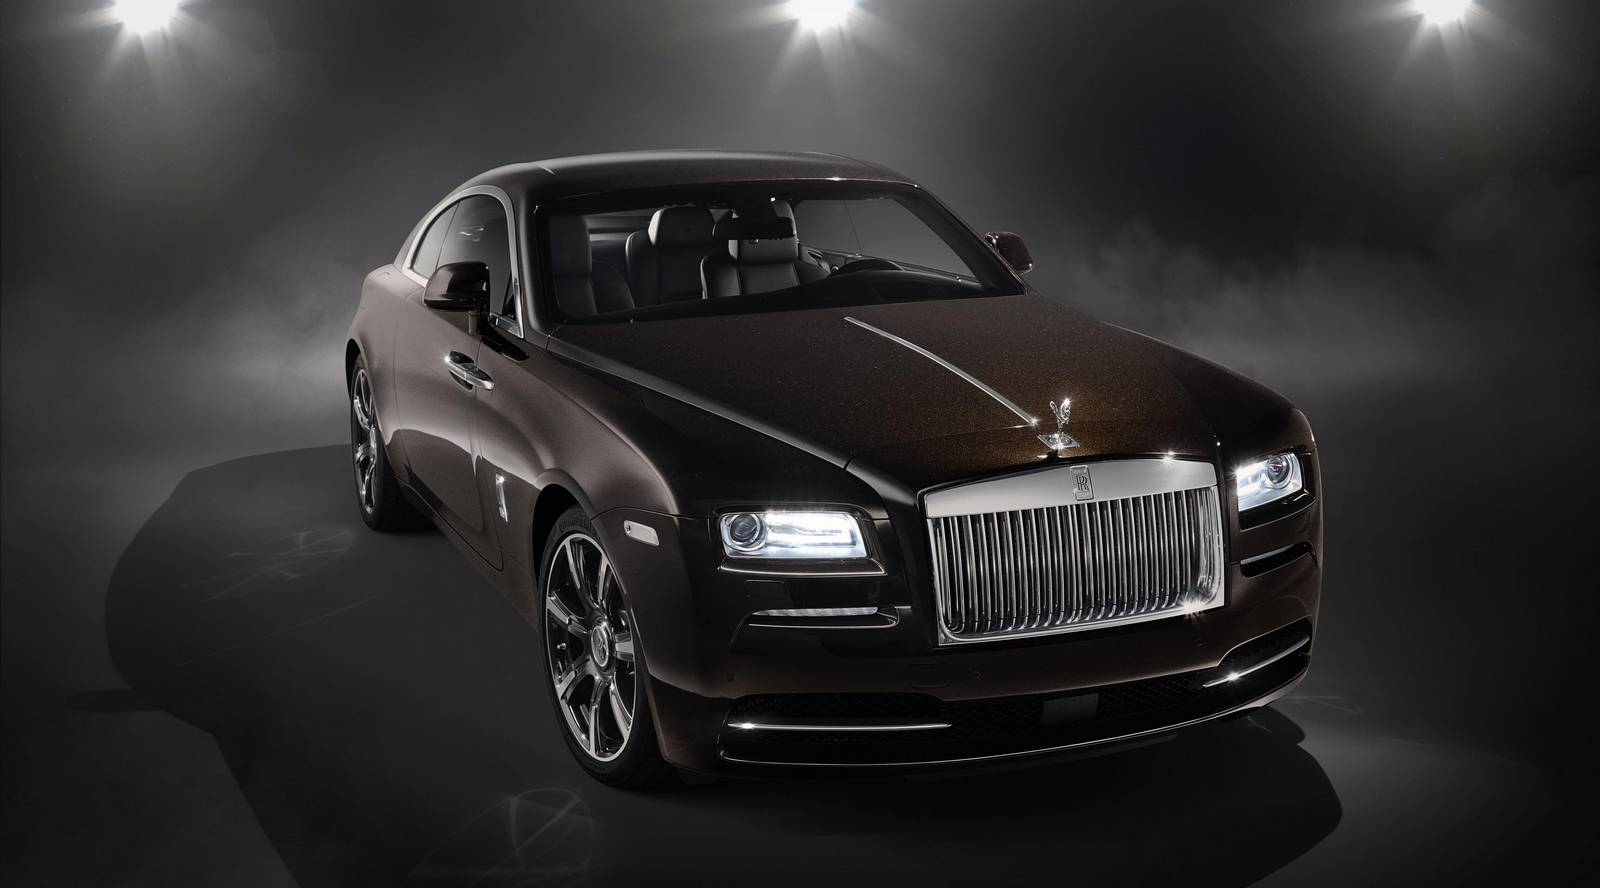 ' by the arts has just been unveiled. Dubbed the Rolls-Royce Wraith ...